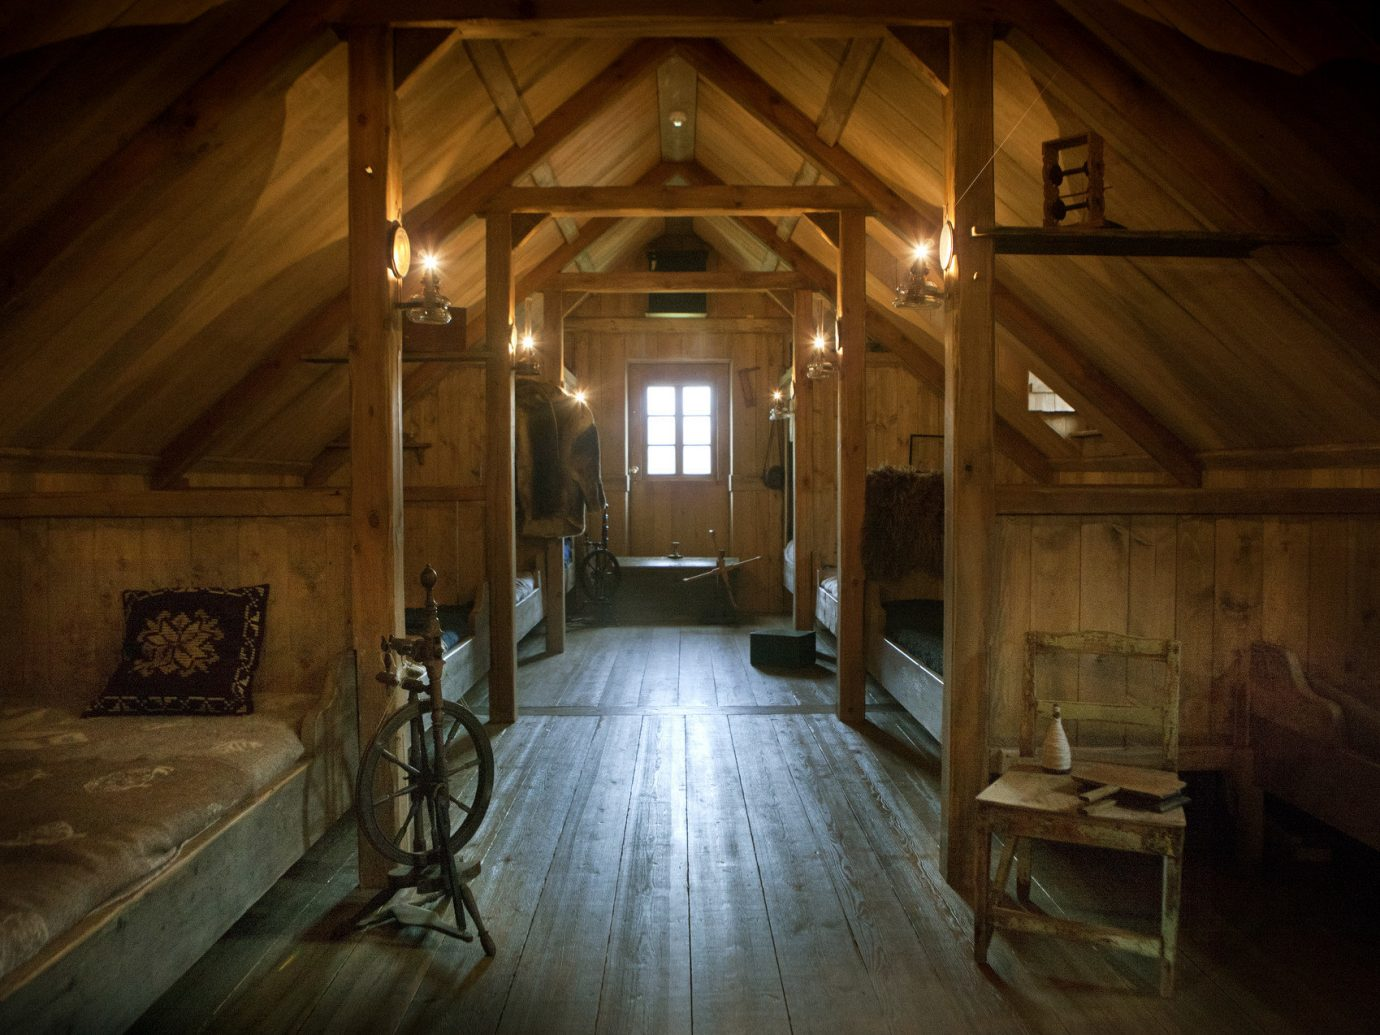 ambient lighting attic bed charming cozy exhibit Historic homey interior living area natural light Offbeat Rustic vintage window indoor floor building room house ceiling estate wood lighting barn interior design home cottage farmhouse log cabin hall stone